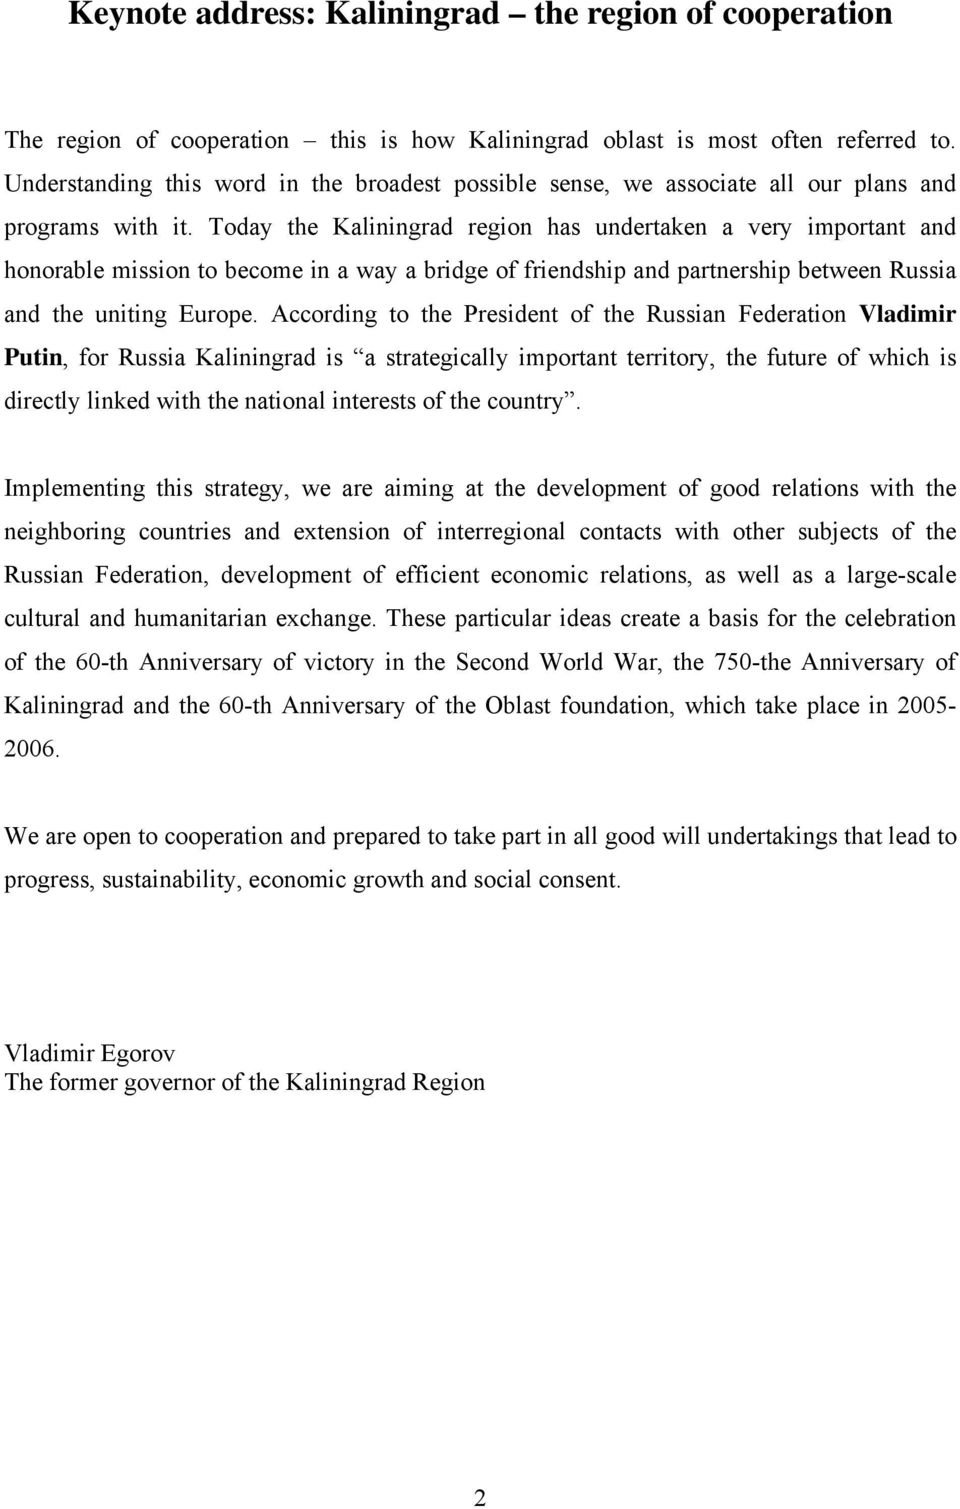 Today the Kaliningrad region has undertaken a very important and honorable mission to become in a way a bridge of friendship and partnership between Russia and the uniting Europe.